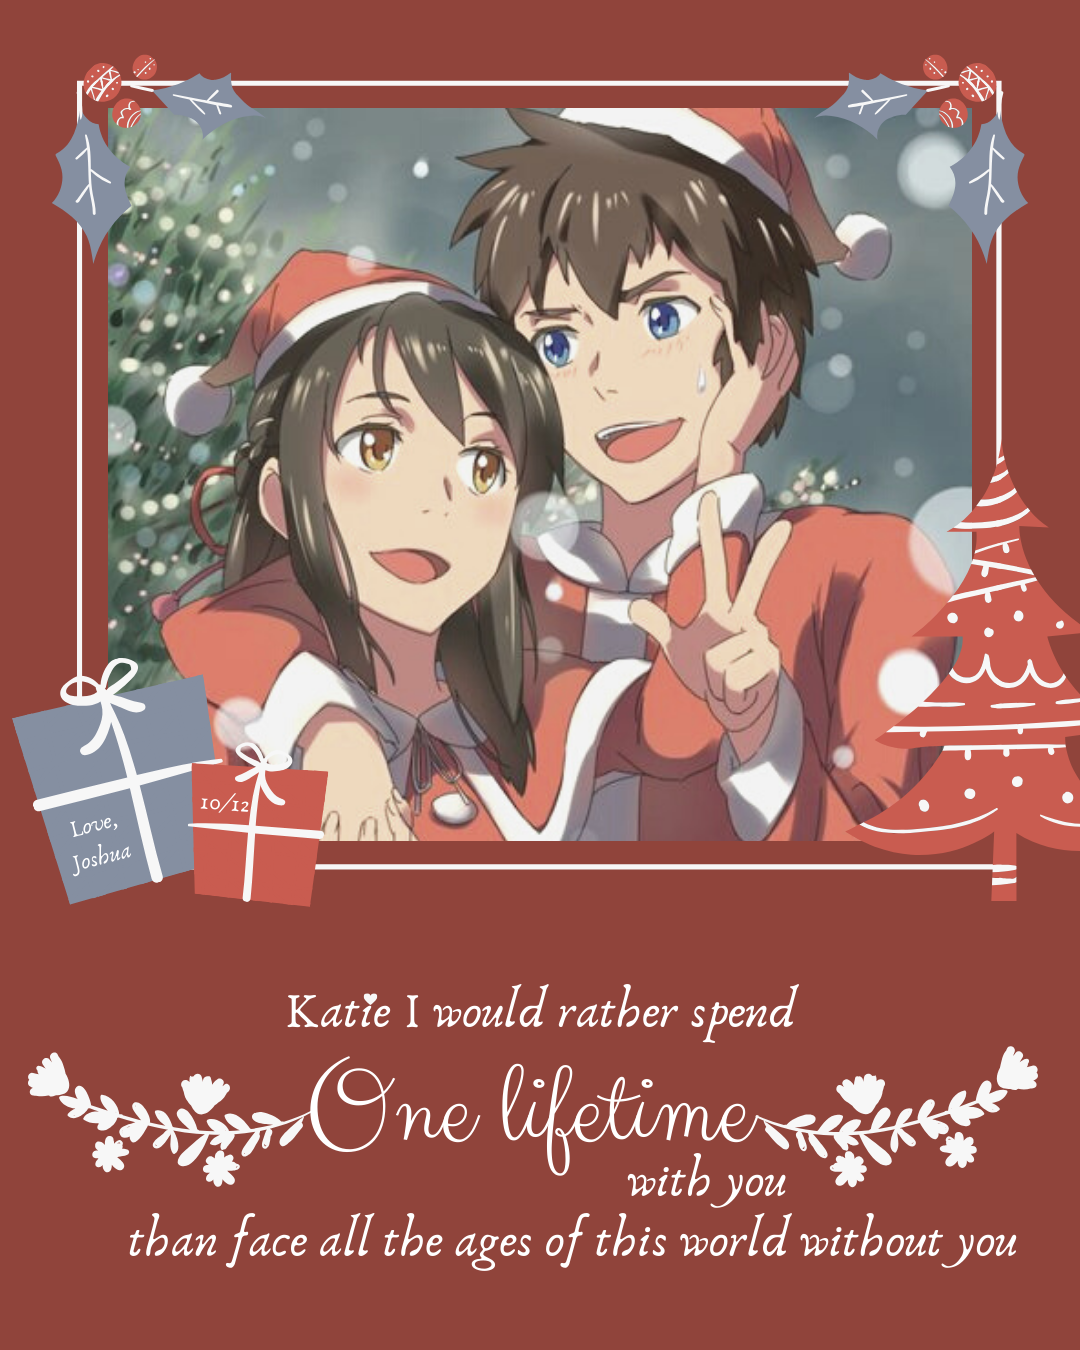 Ohayou Gozaimasu Katie Xd Please Have A Nice Day And Have Fun In Your Classes I Wish You All The Best Celine Dion Christmas Celine Dion Always Here For You